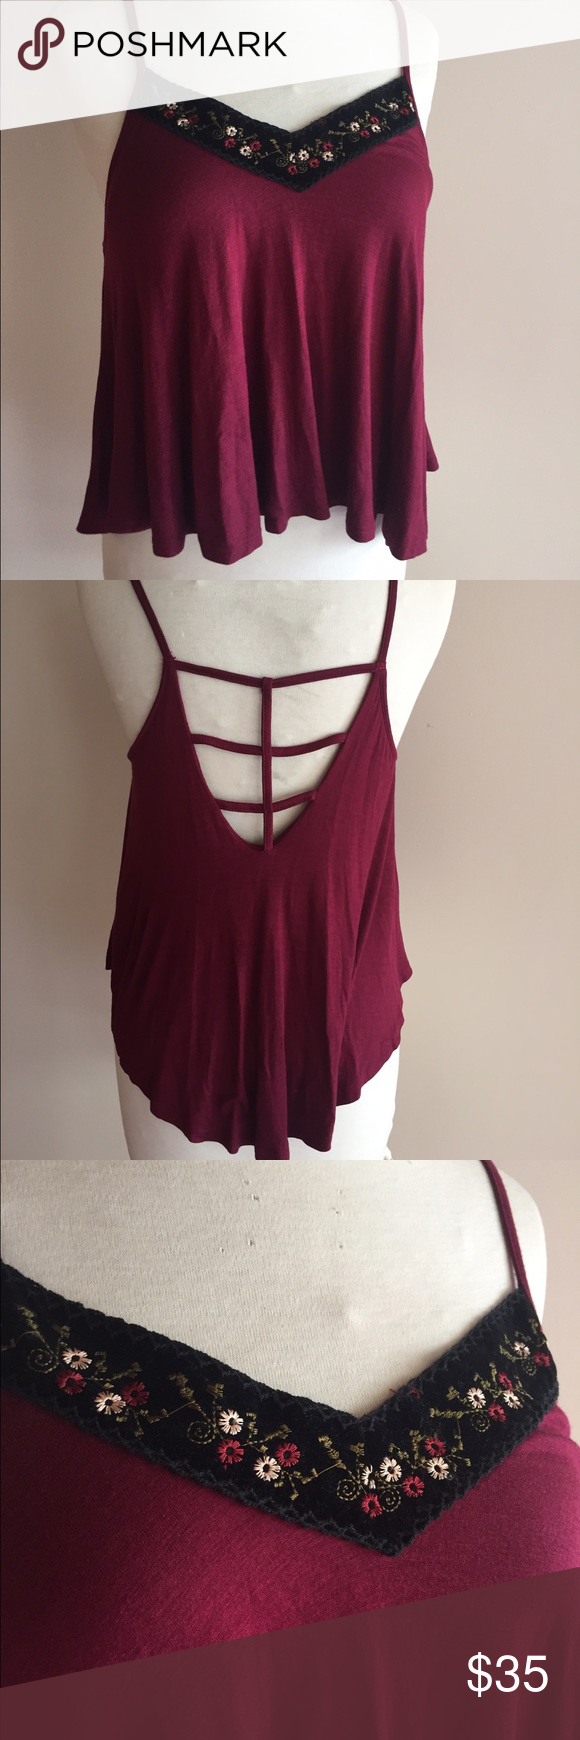 NWOT Burgundy Crop top Burgundy swing crop top. With velvet embroidered at the neck line and caged style back. Has built in bra. Super soft! Monteau Tops Crop Tops